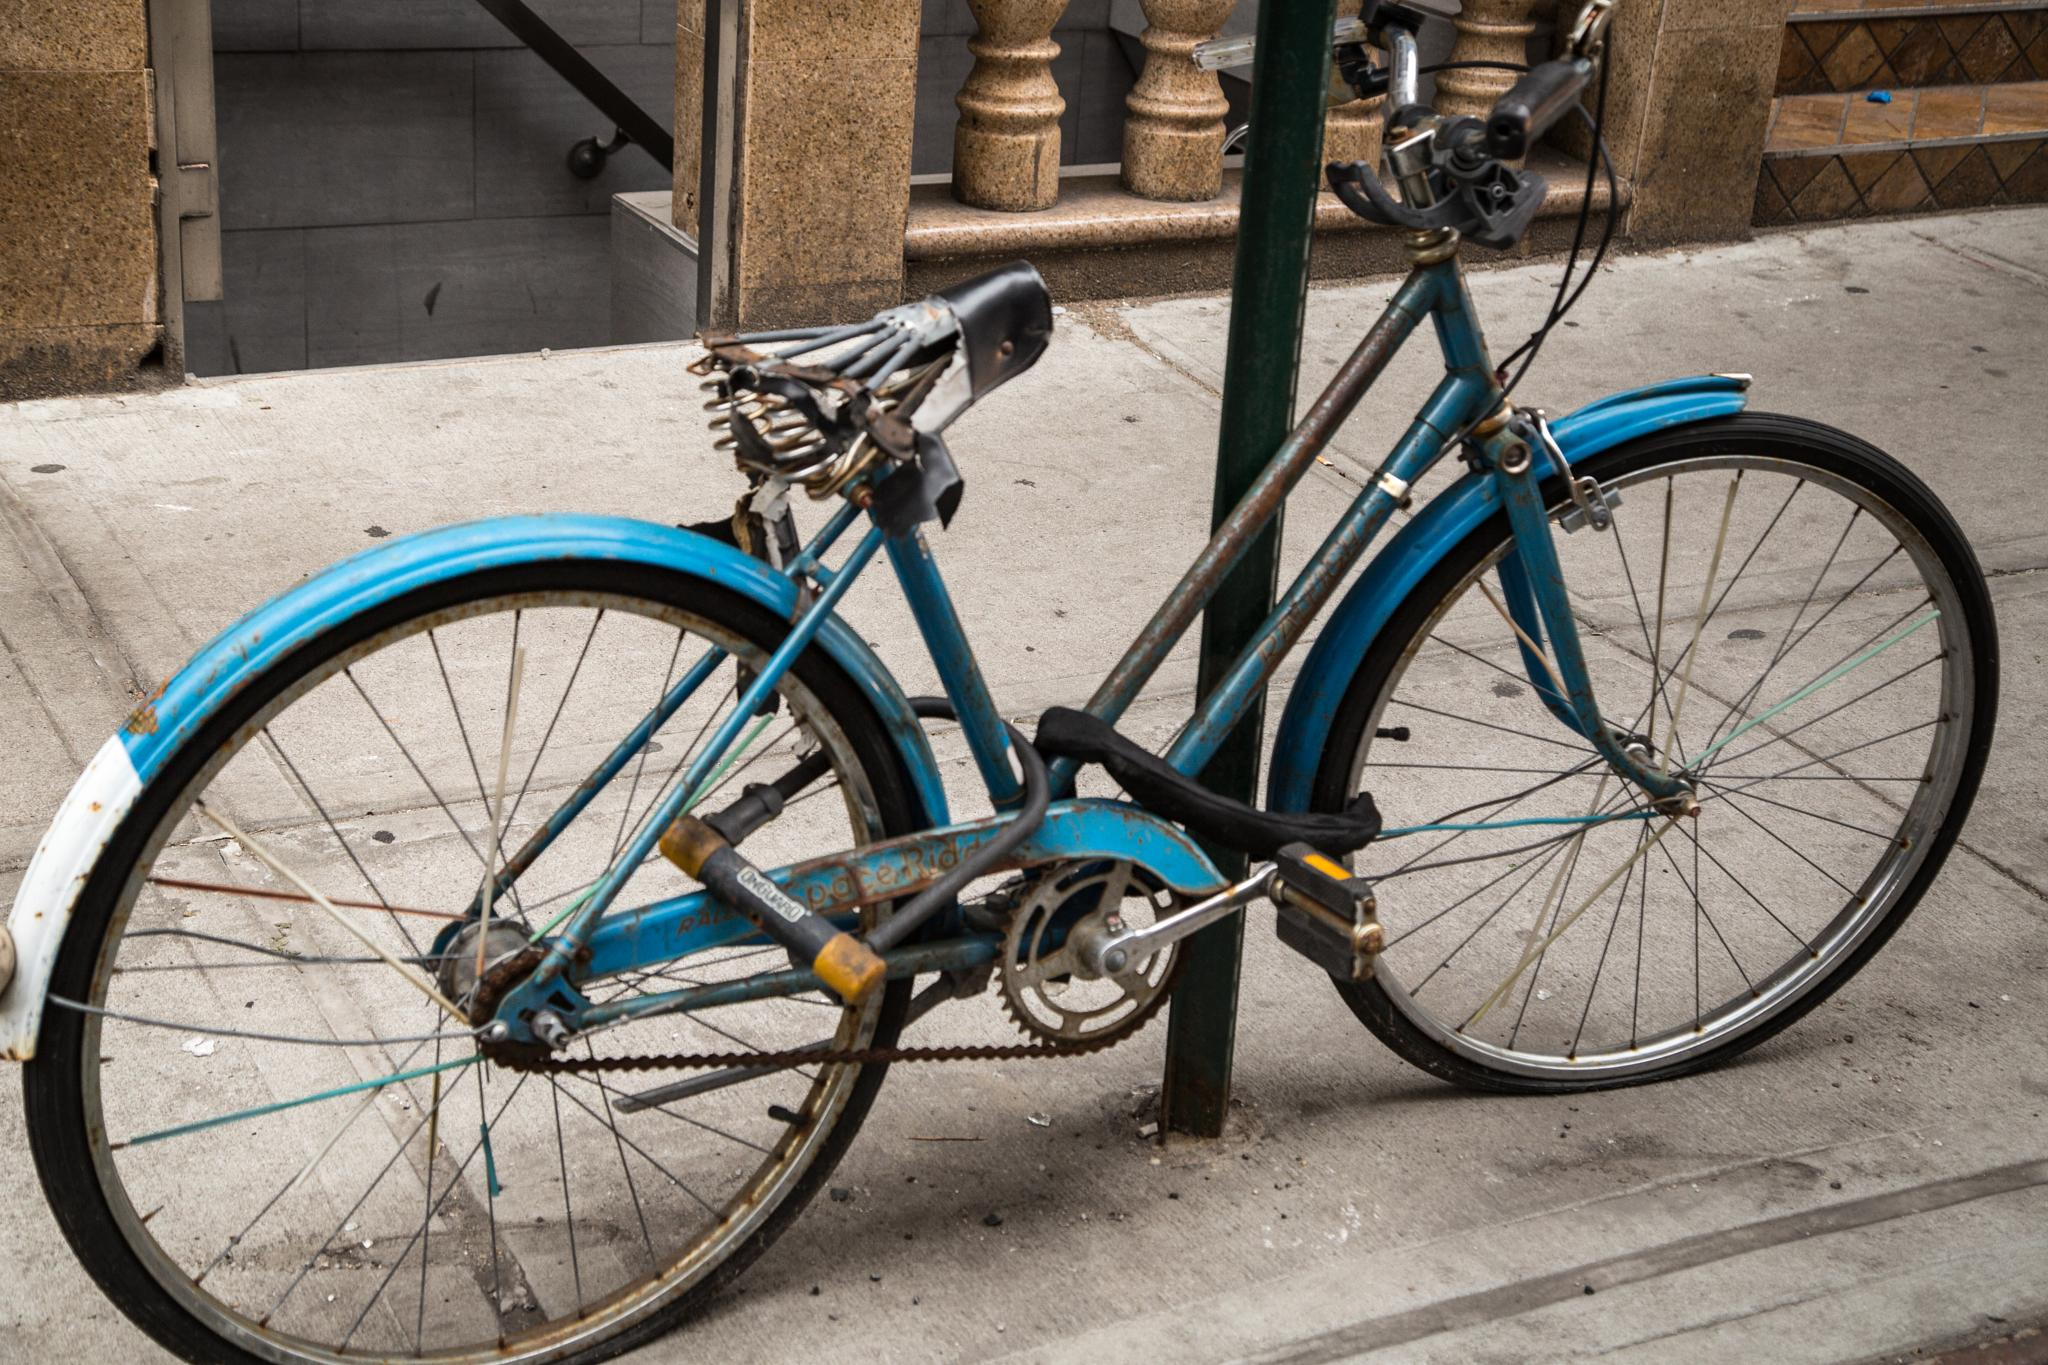 classic bicycle in chinatown by Mazzie Ito